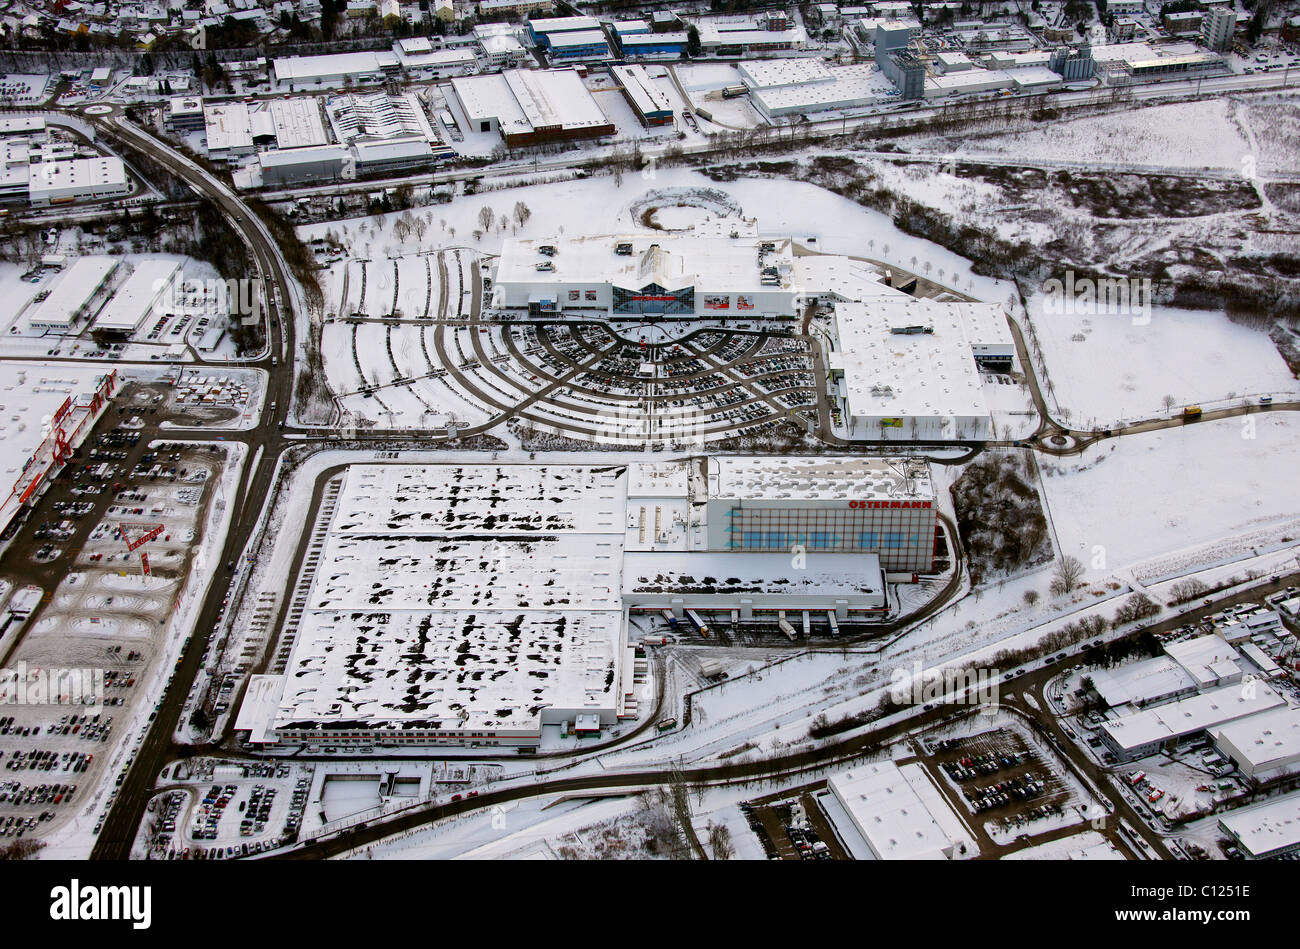 Aerial View Furniture Store Ostermann Parking Lot Snow Witten